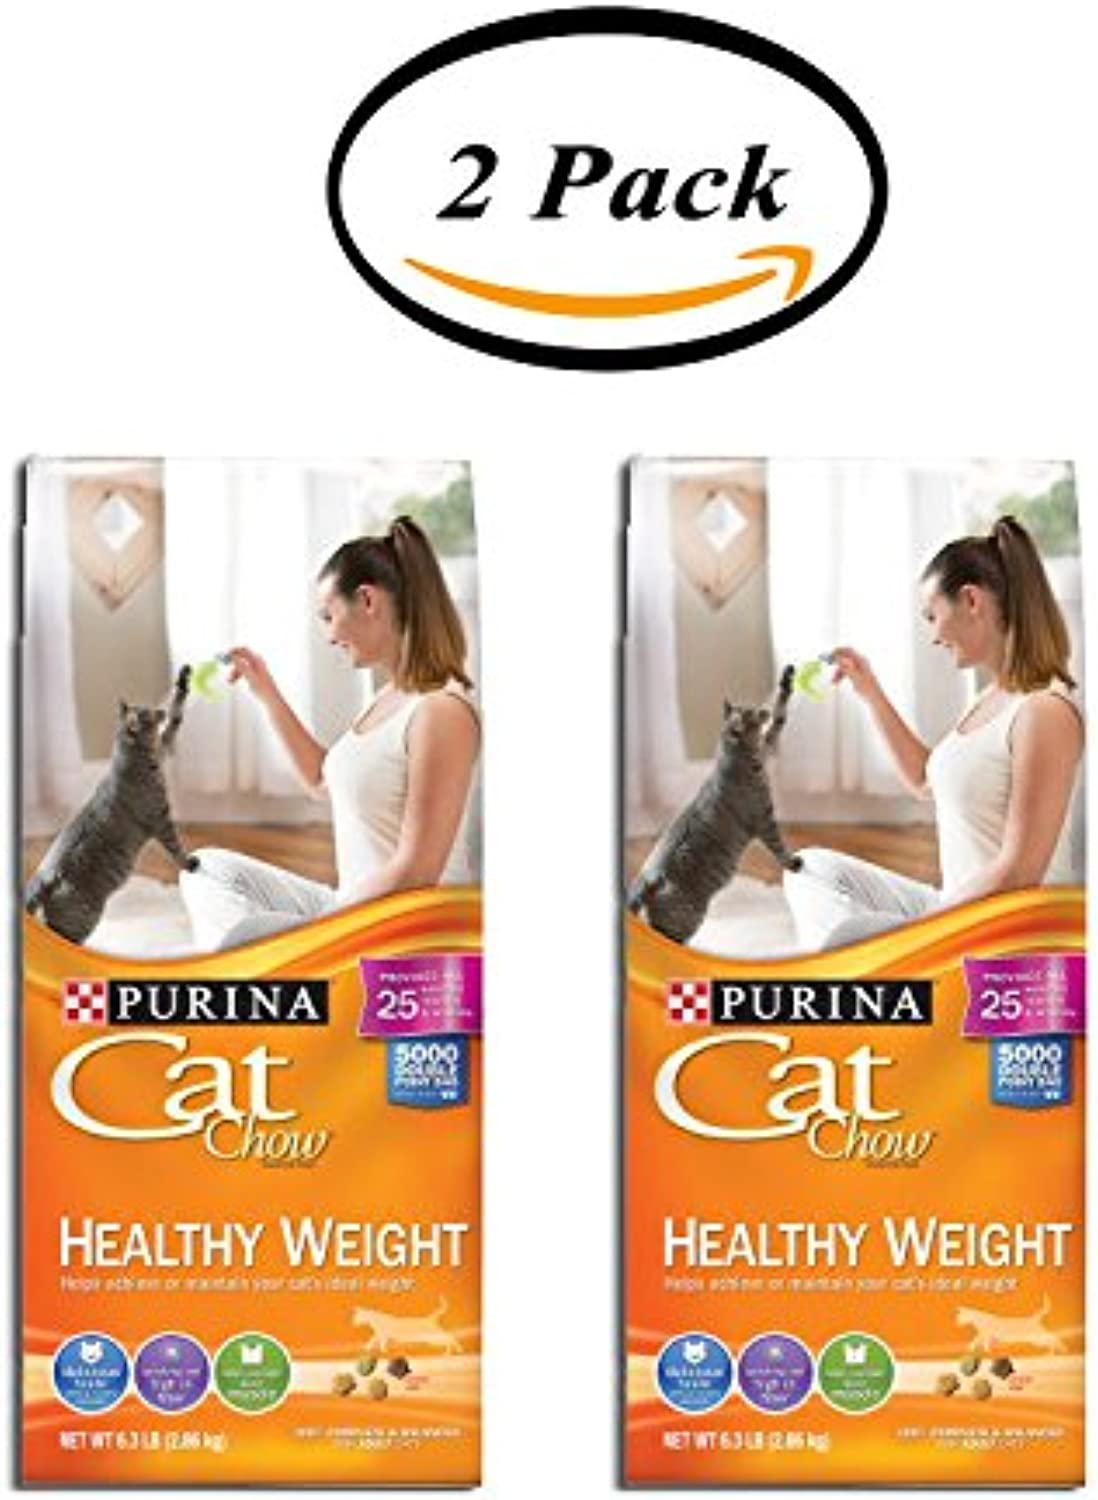 Pack of 2  Purina Cat Chow Healthy Weight Cat Food, 6.3 lb